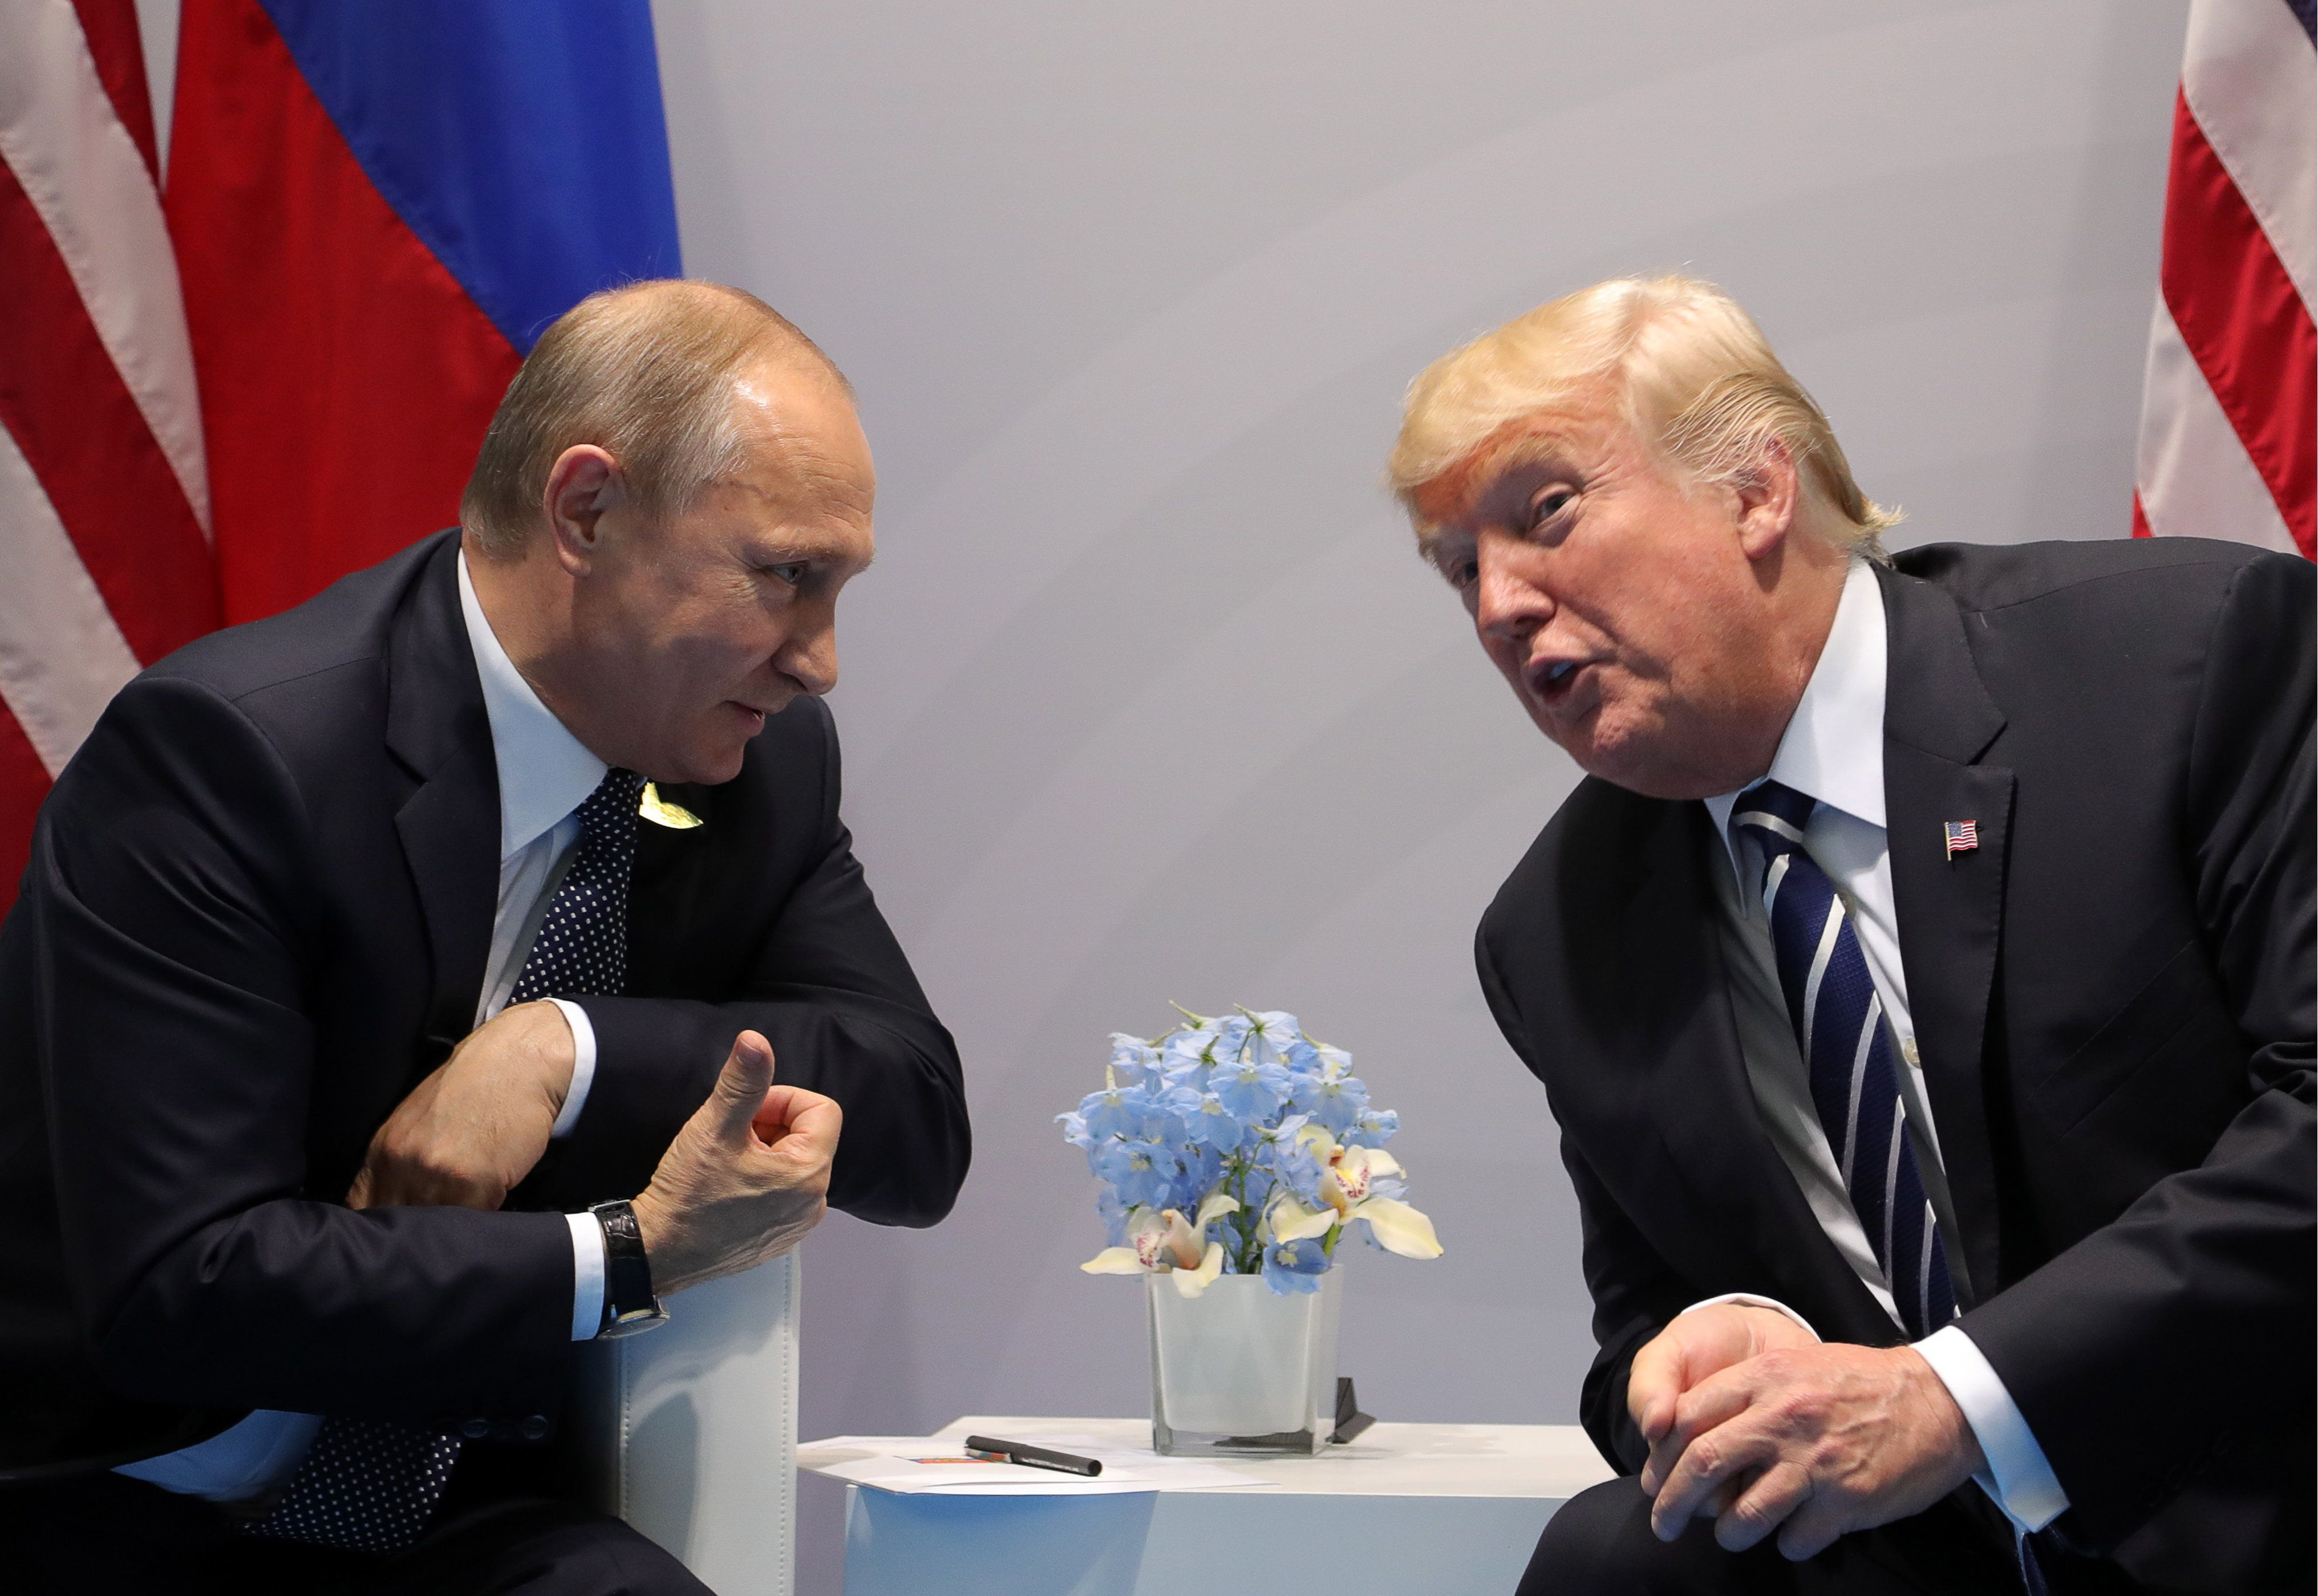 HAMBURG, GERMANY  JULY 7, 2017: Russia's President Vladimir Putin (L) and US President Donald Trump talking during a bilateral meeting on the sidelines of the G20 summit in Hamburg. Mikhail Klimentyev/Russian Presidential Press and Information Office/TASS (Photo by Mikhail Klimentyev\TASS via Getty Images)